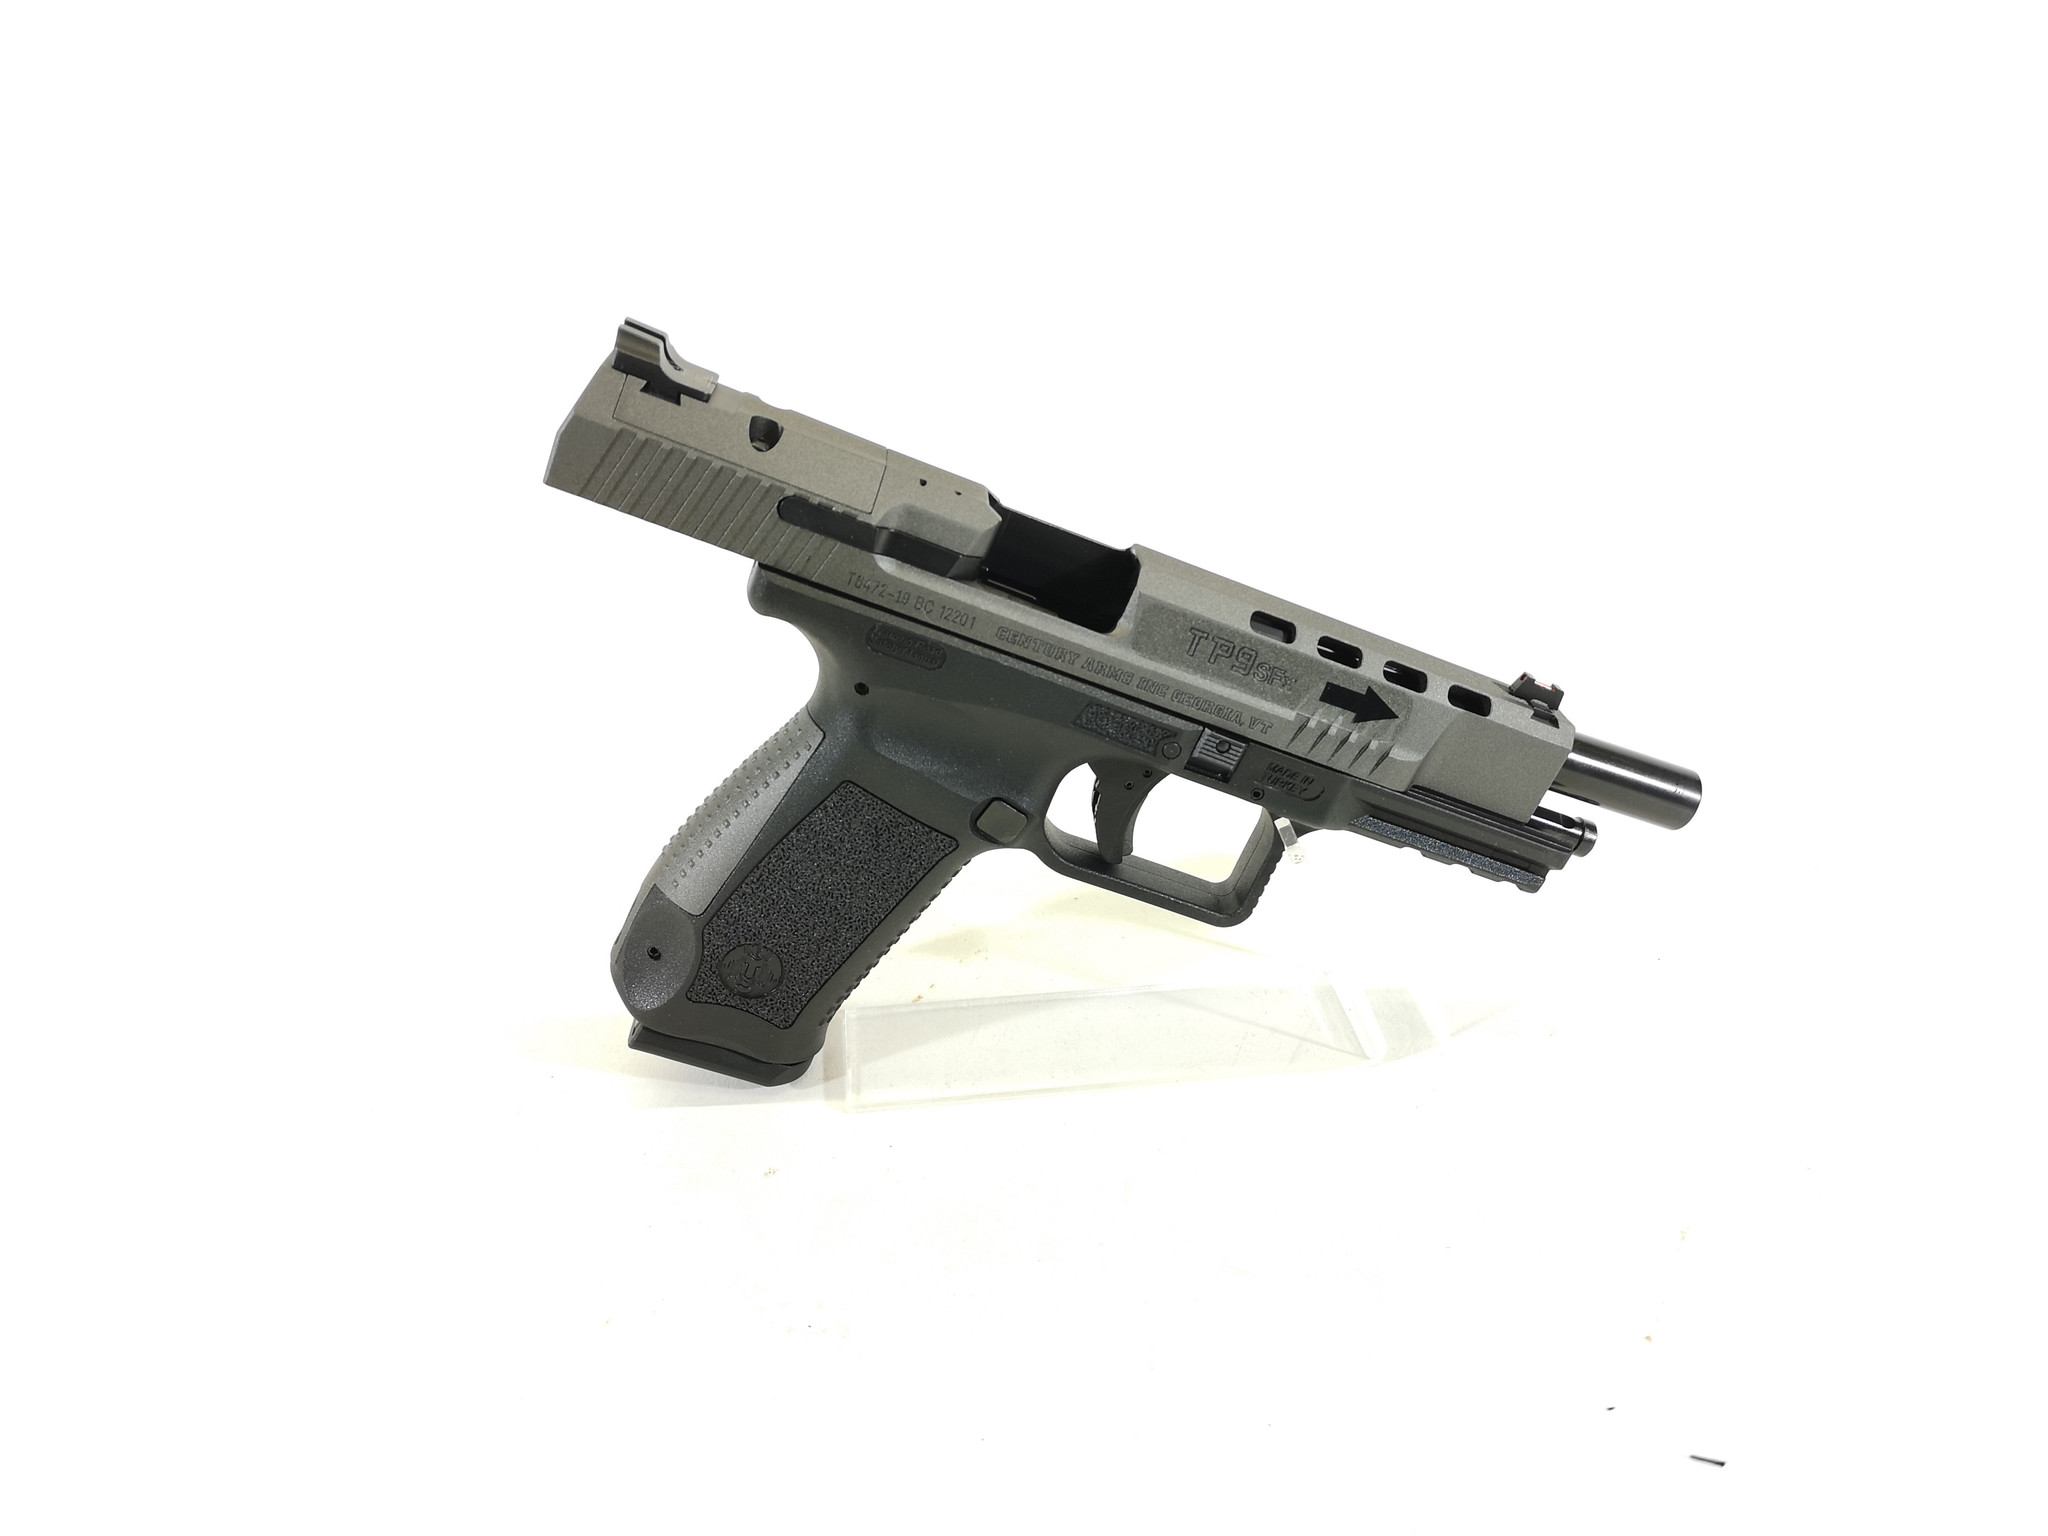 Canik USED UHG-6855 Canik Model TP-9 SFX c.9mm Semi Auto Pistol with Original Case and Contents. Mint Condition